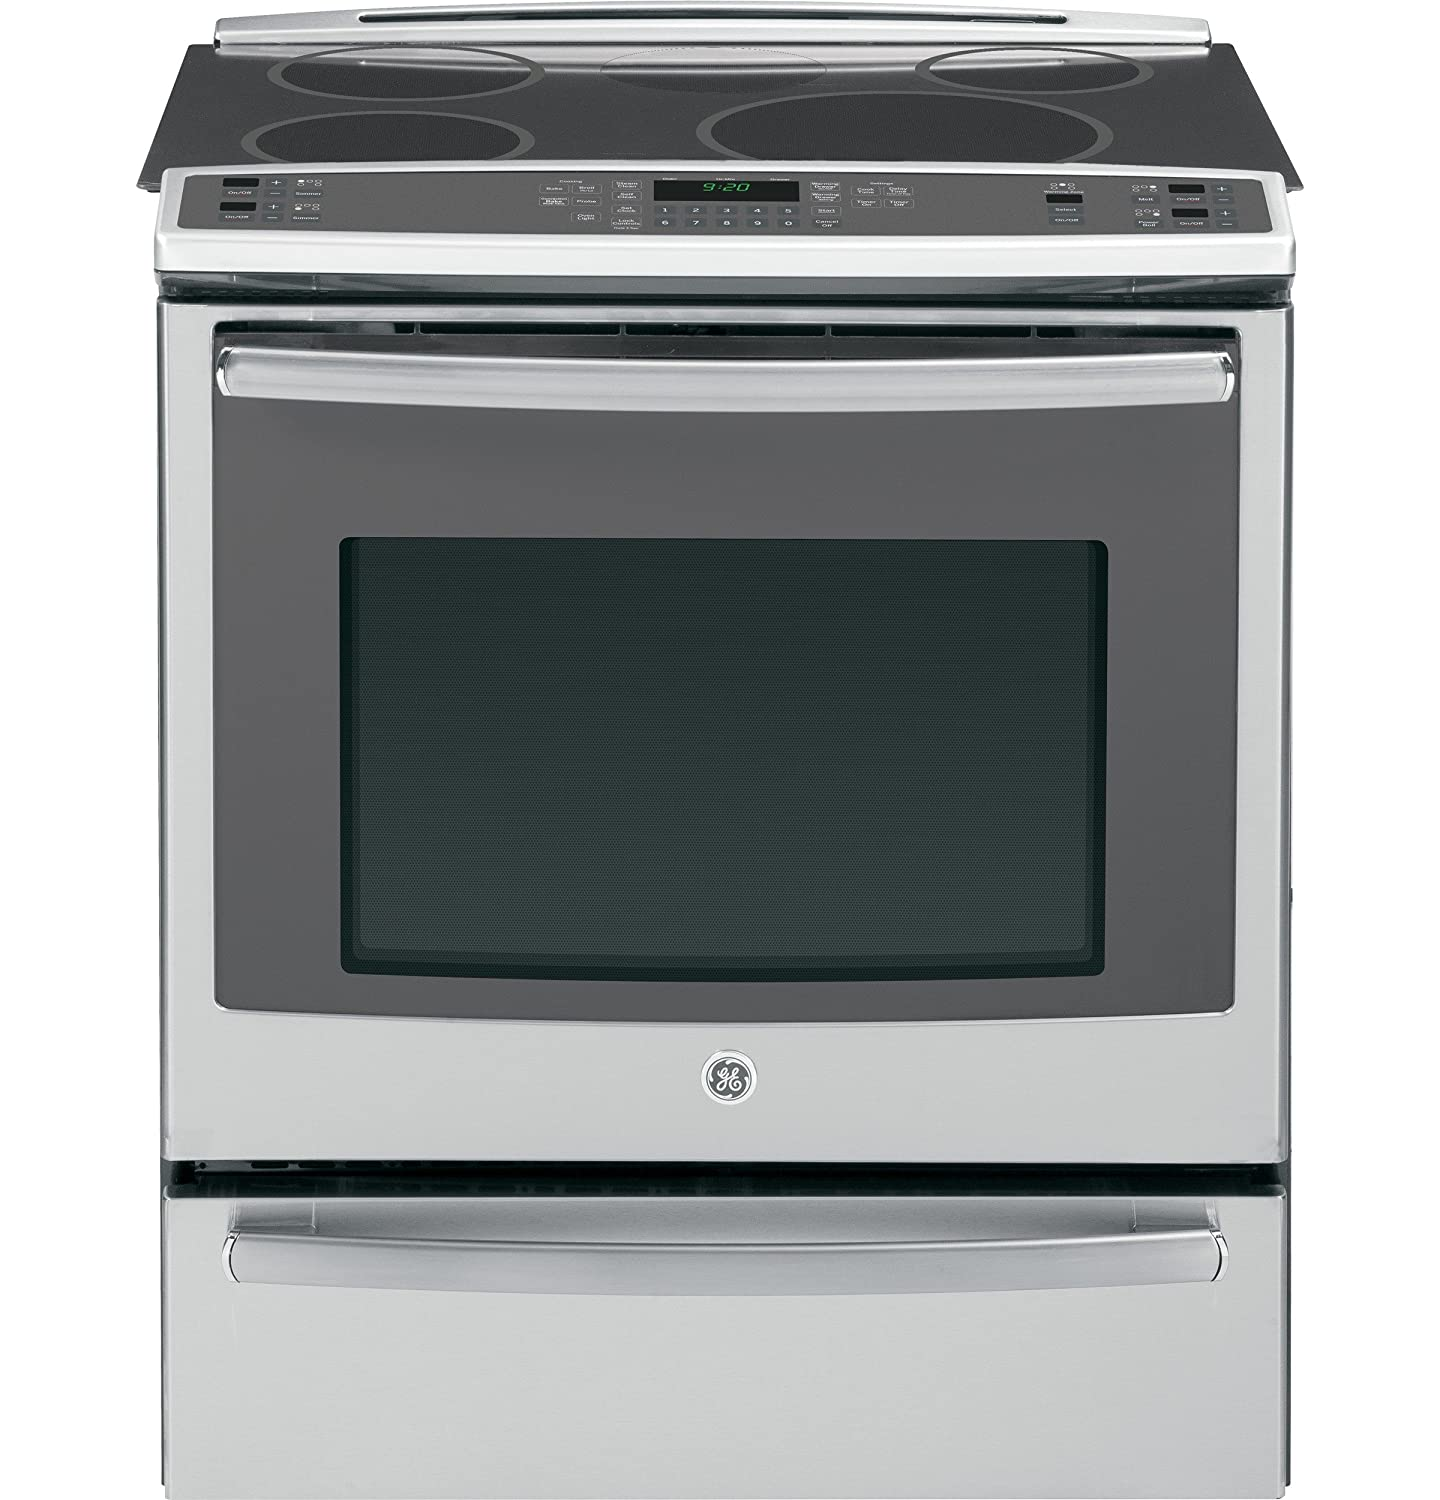 Ultimate Guide To Oven Safety Buying Tips Reviews And Our List Of Electric Vehicle Supply Equipment On Without Hard Wiring Part The Ge Profile Line This Slide In Range Features A Cool Touch Induction Cooktop Self Cleaning With An Available Steam Option